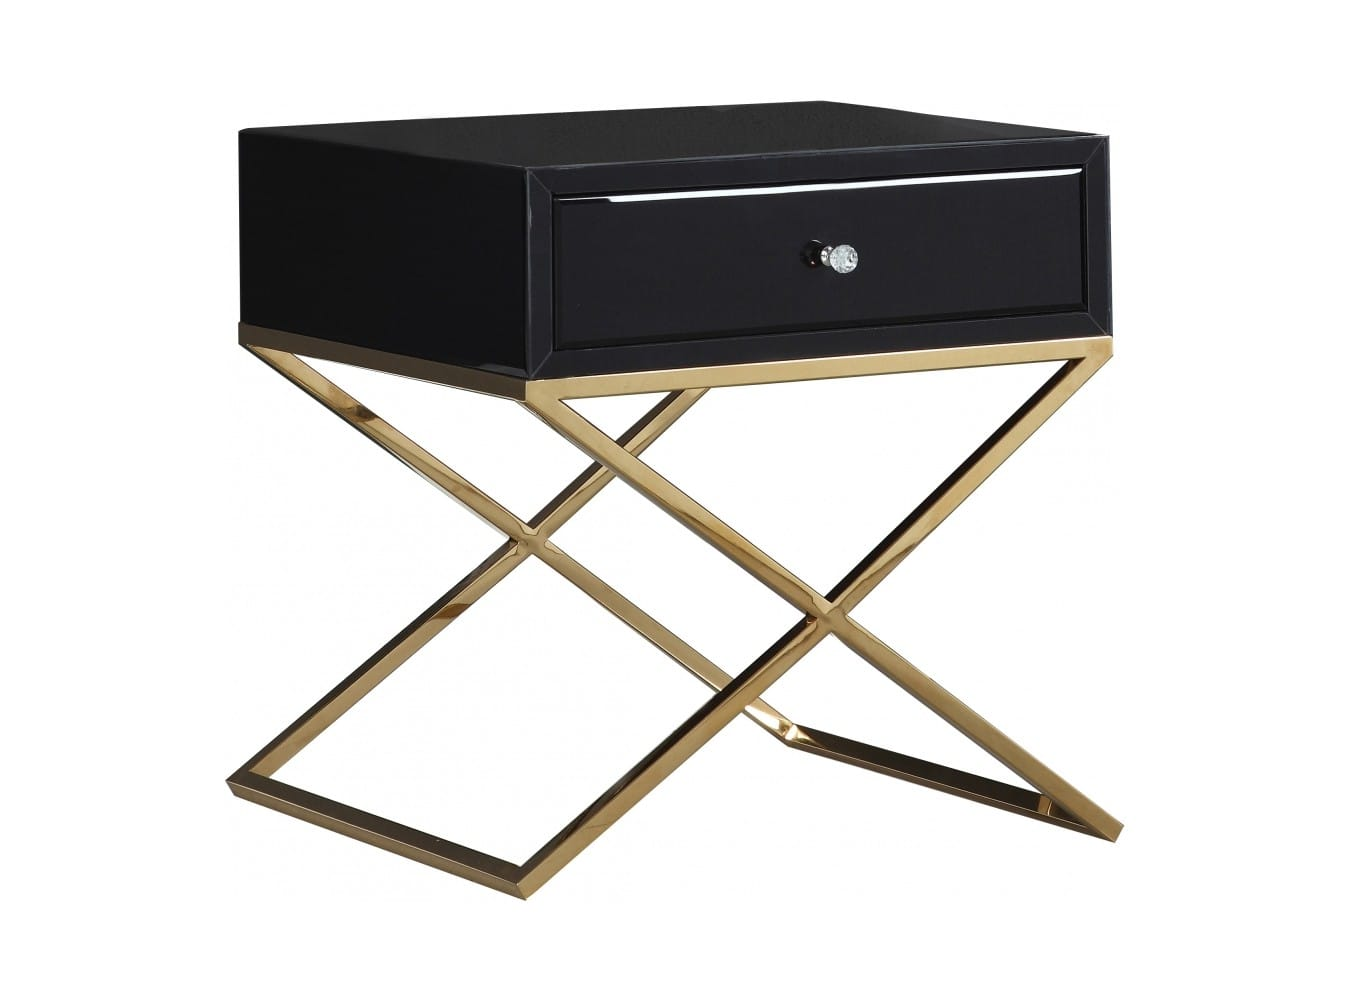 Lynn Black Gold Stainless Steel Side Table By Meridian Furniture